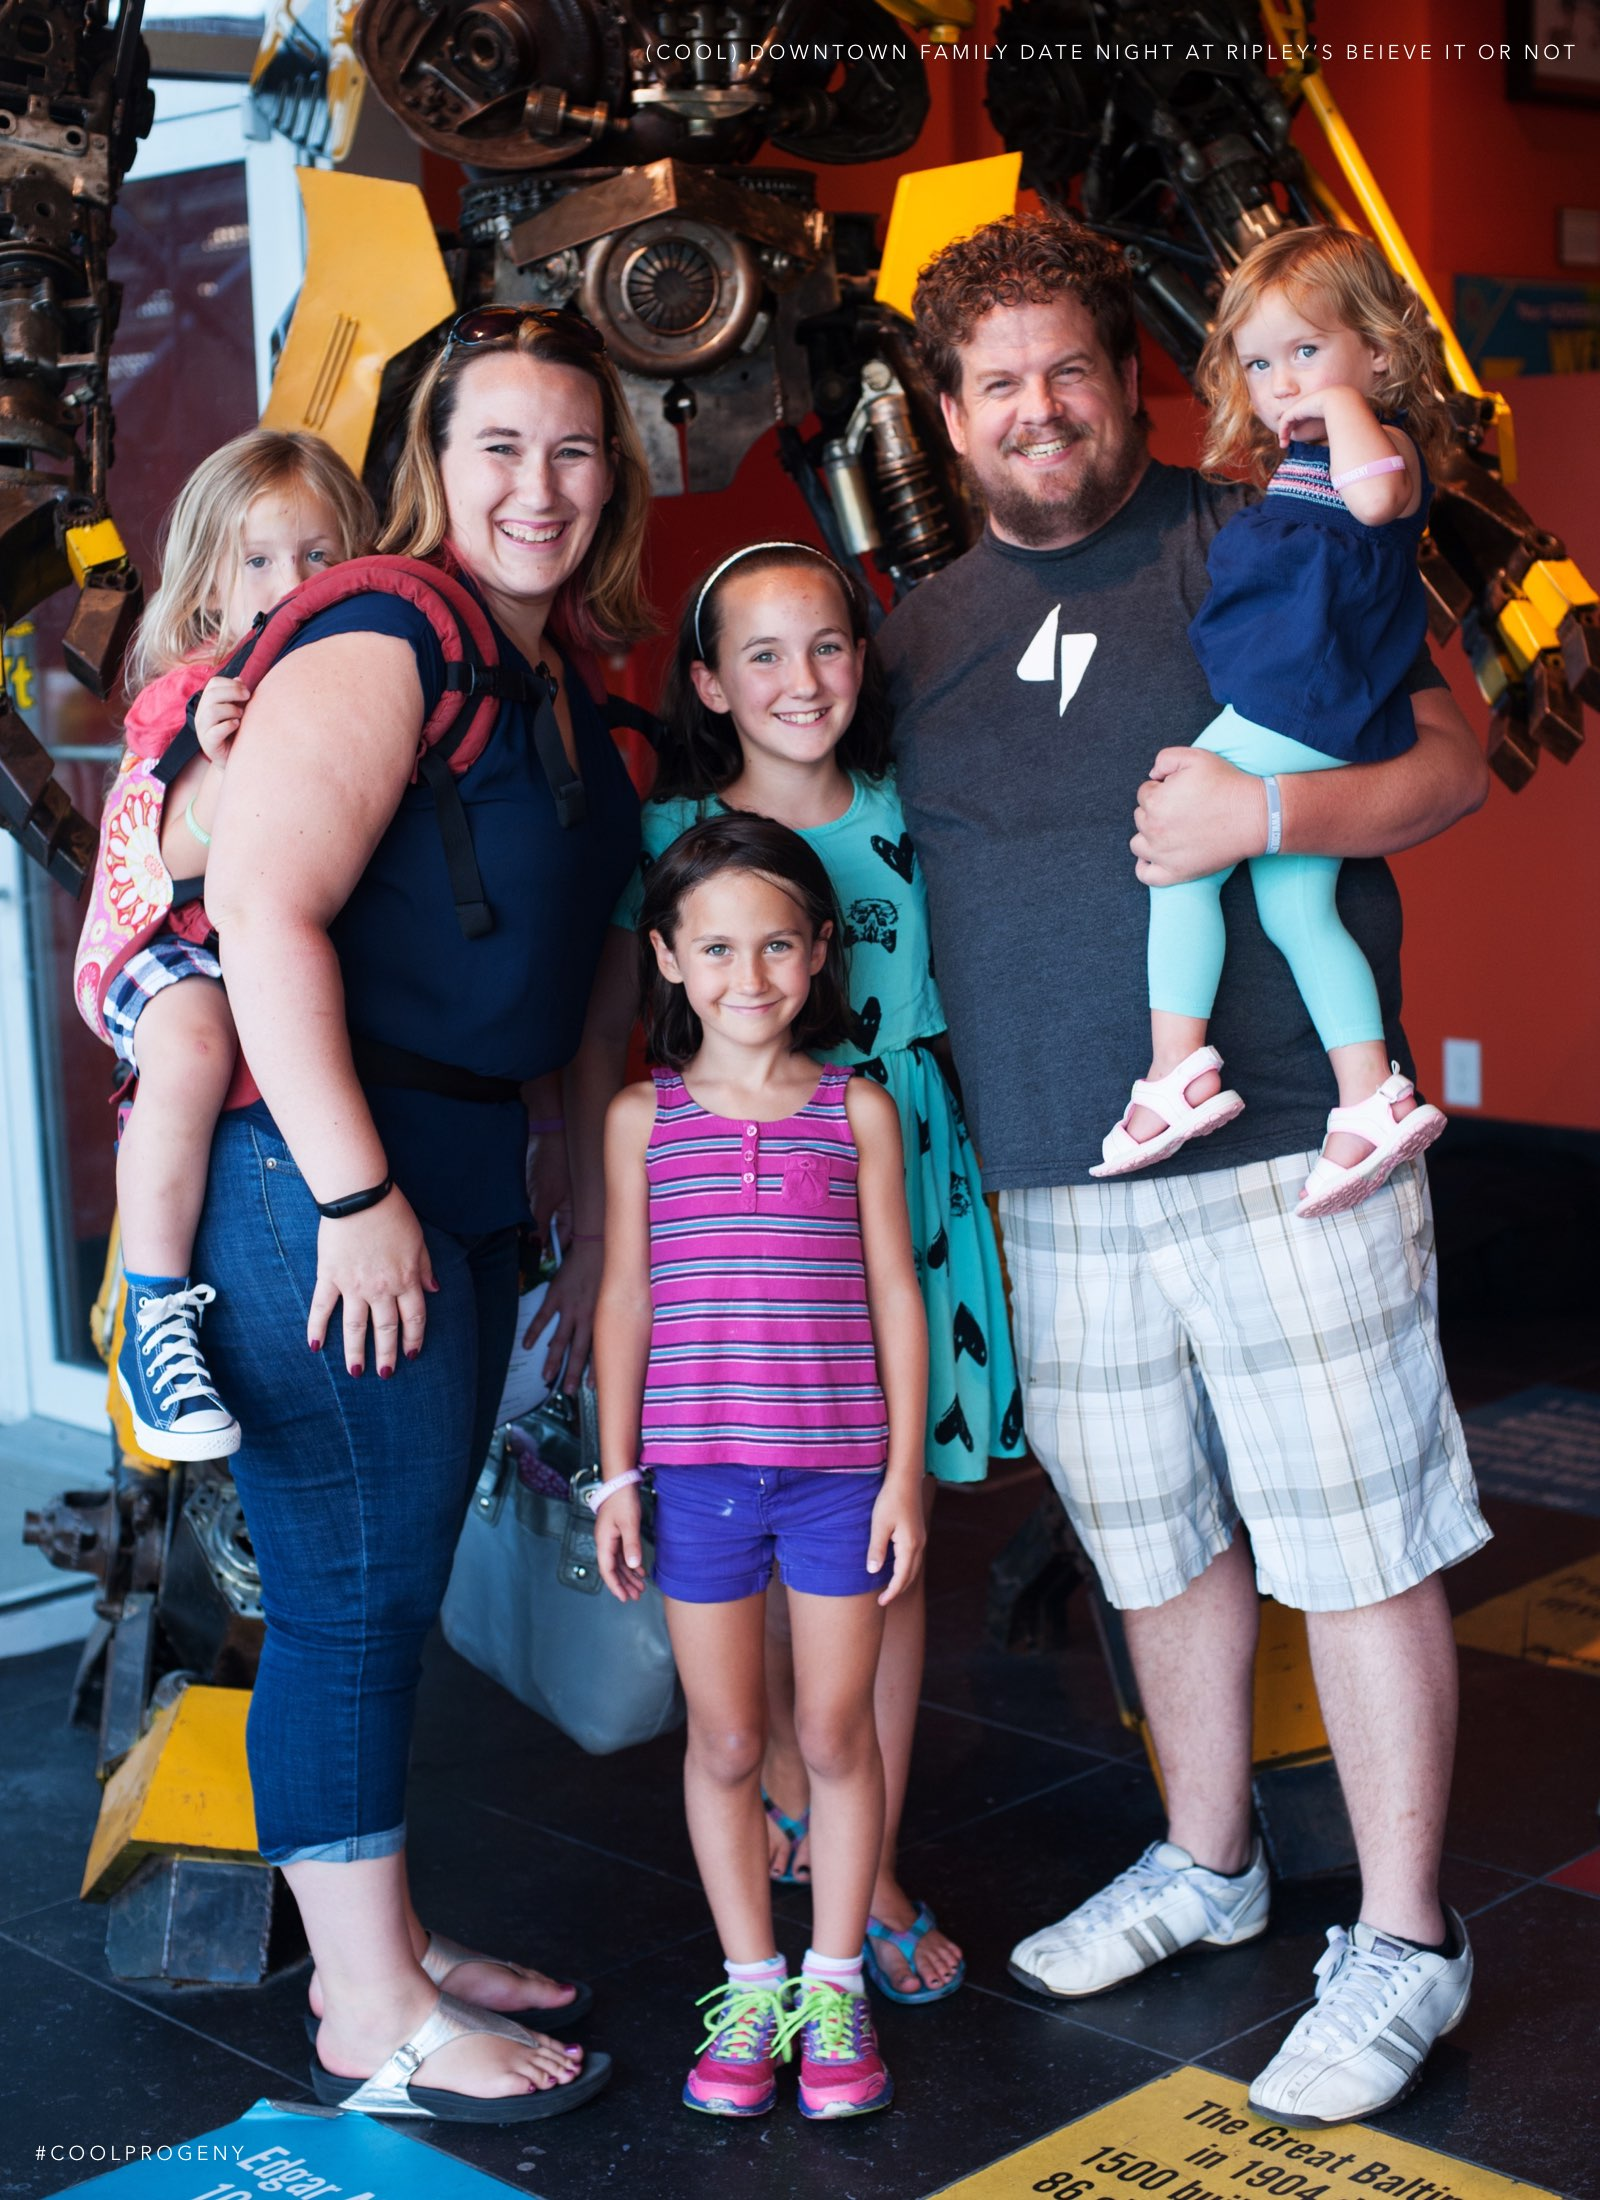 (cool) family date night at ripley's believe it or not! - (cool) progeny. Photo by Laura Black.